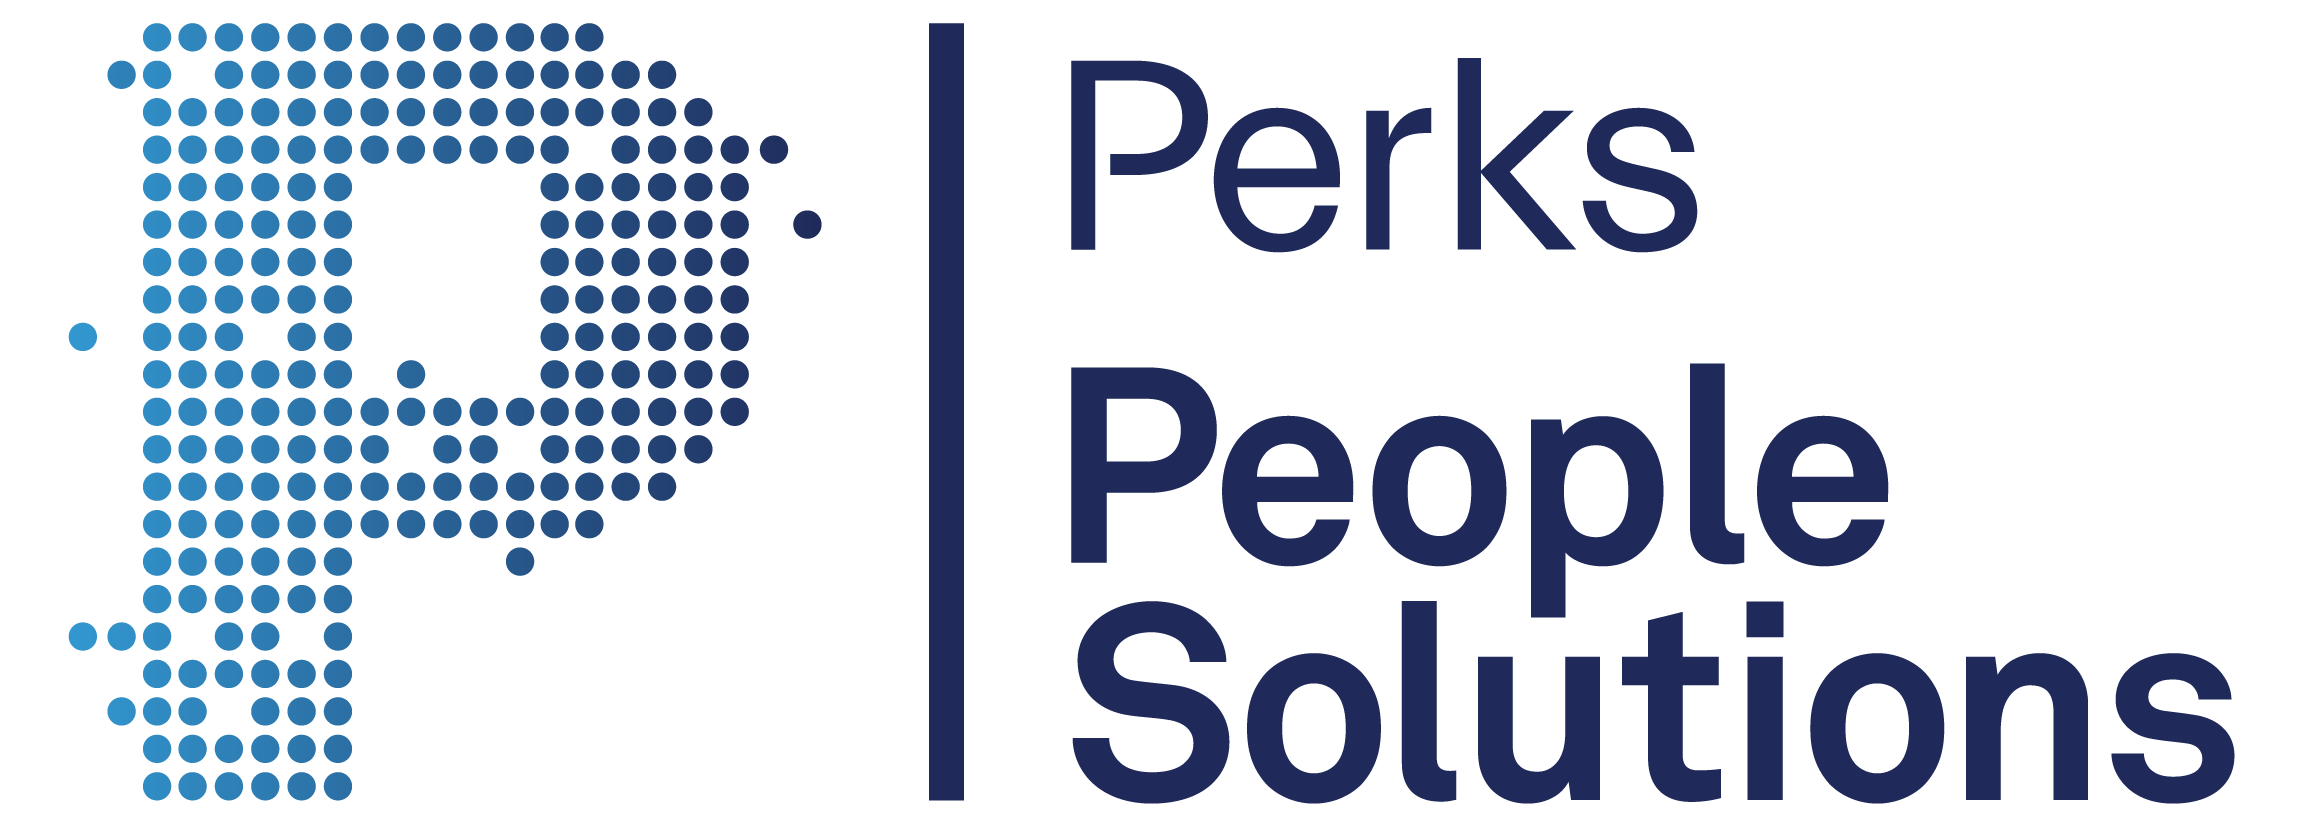 Perks Accountants & Wealth Advisers